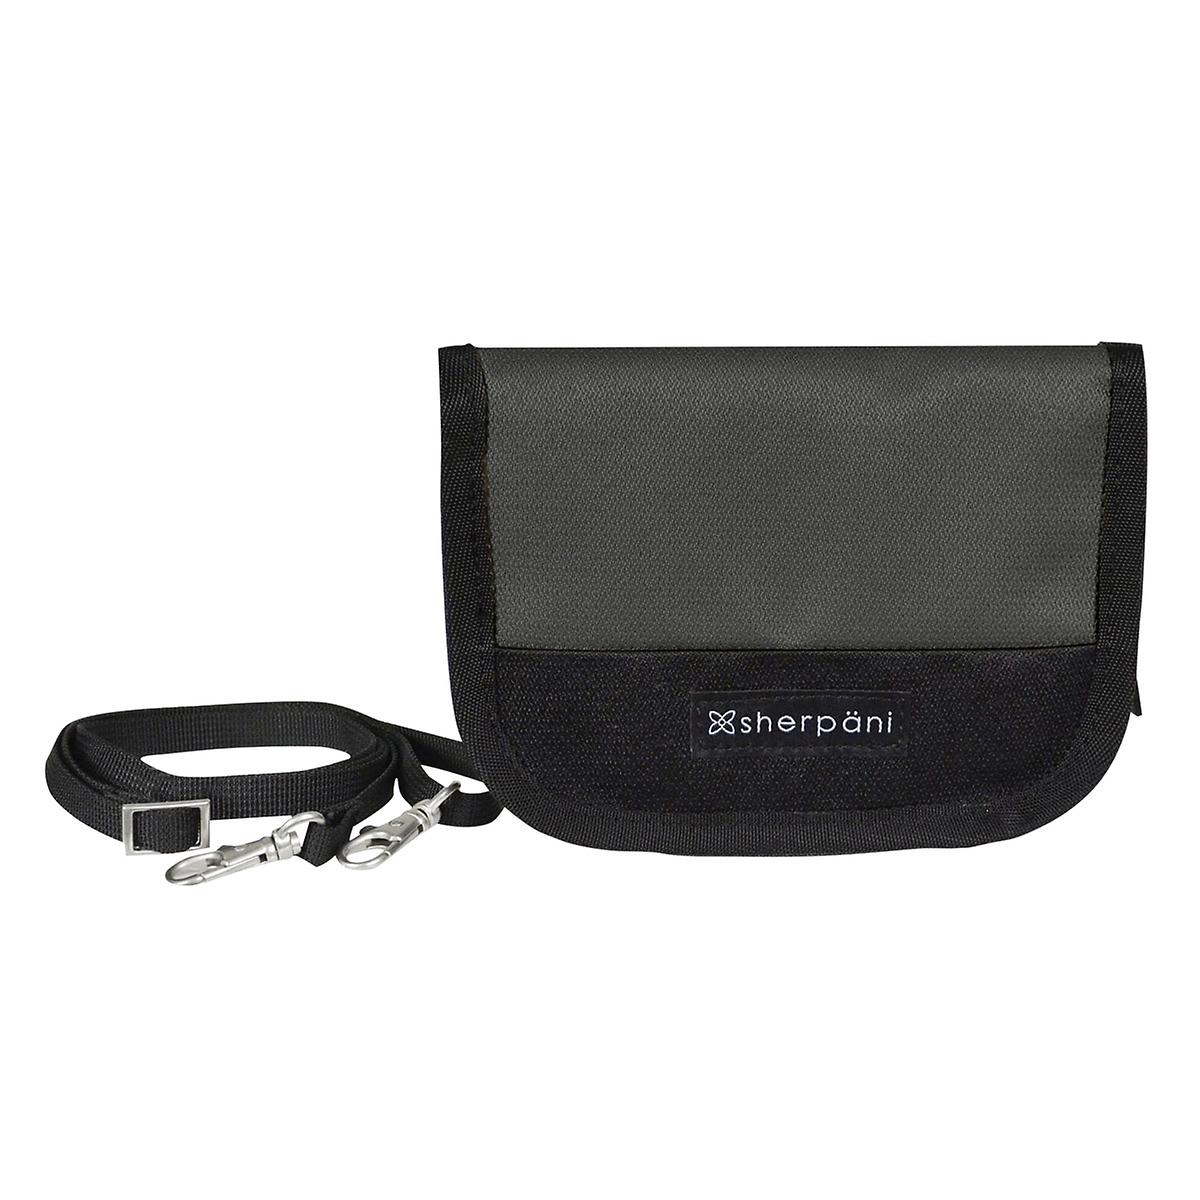 Sherpani Zoe Flint Crossbody Wallet